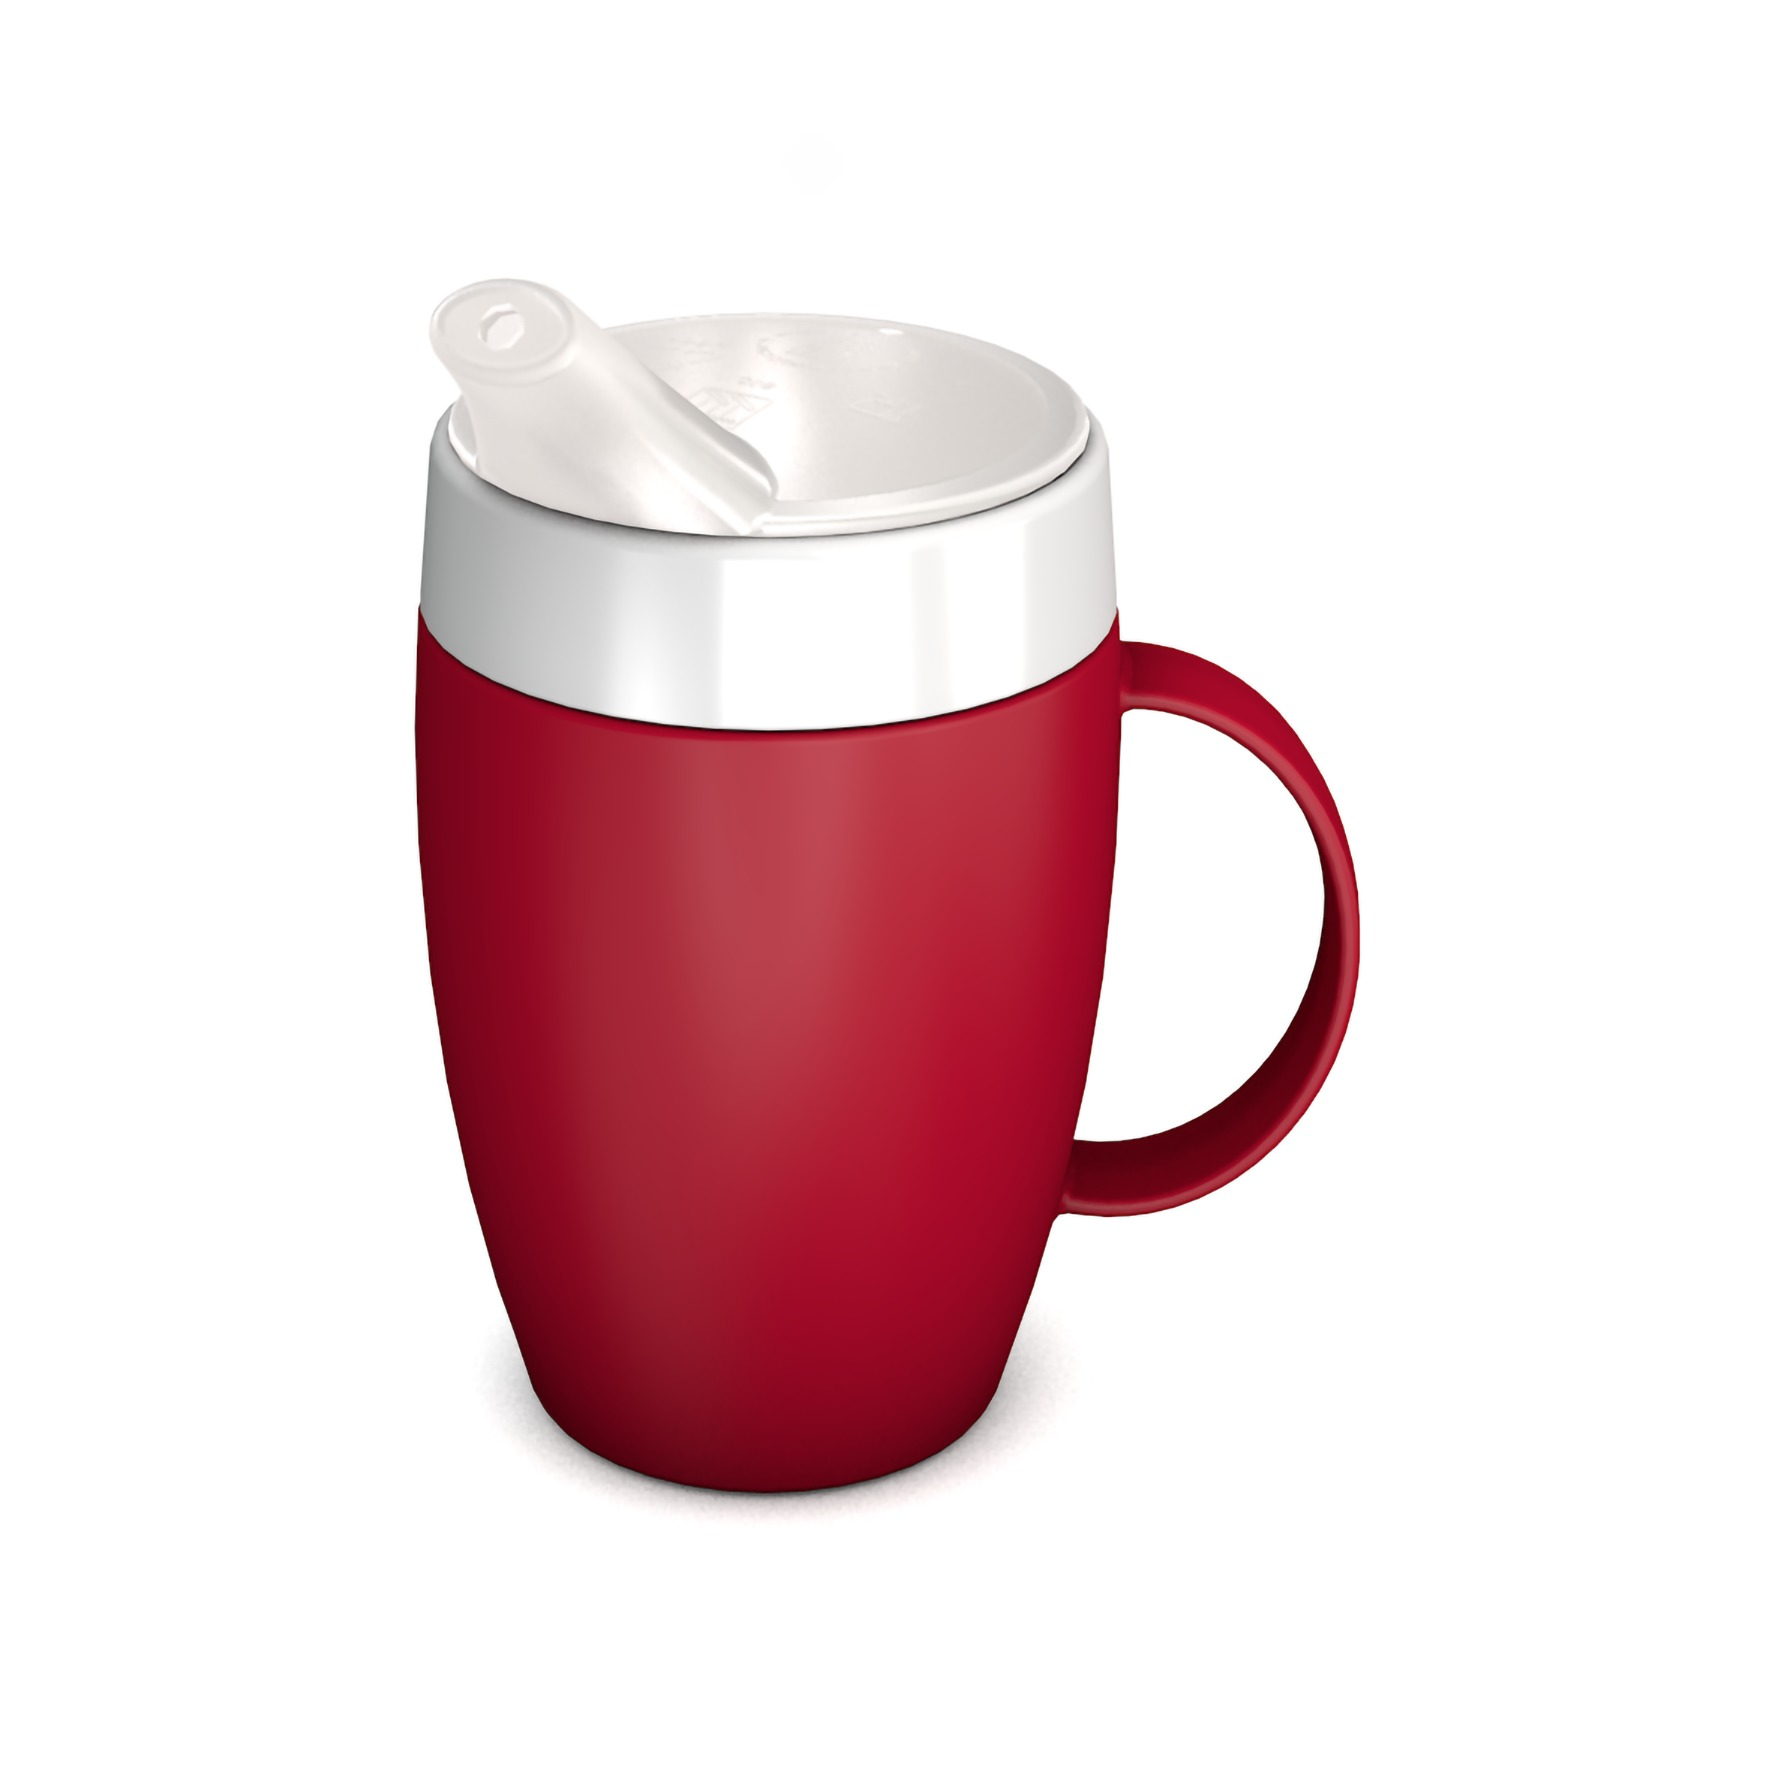 Mug with Internal Cone 140 ml/4.9 oz with Spouted Lid